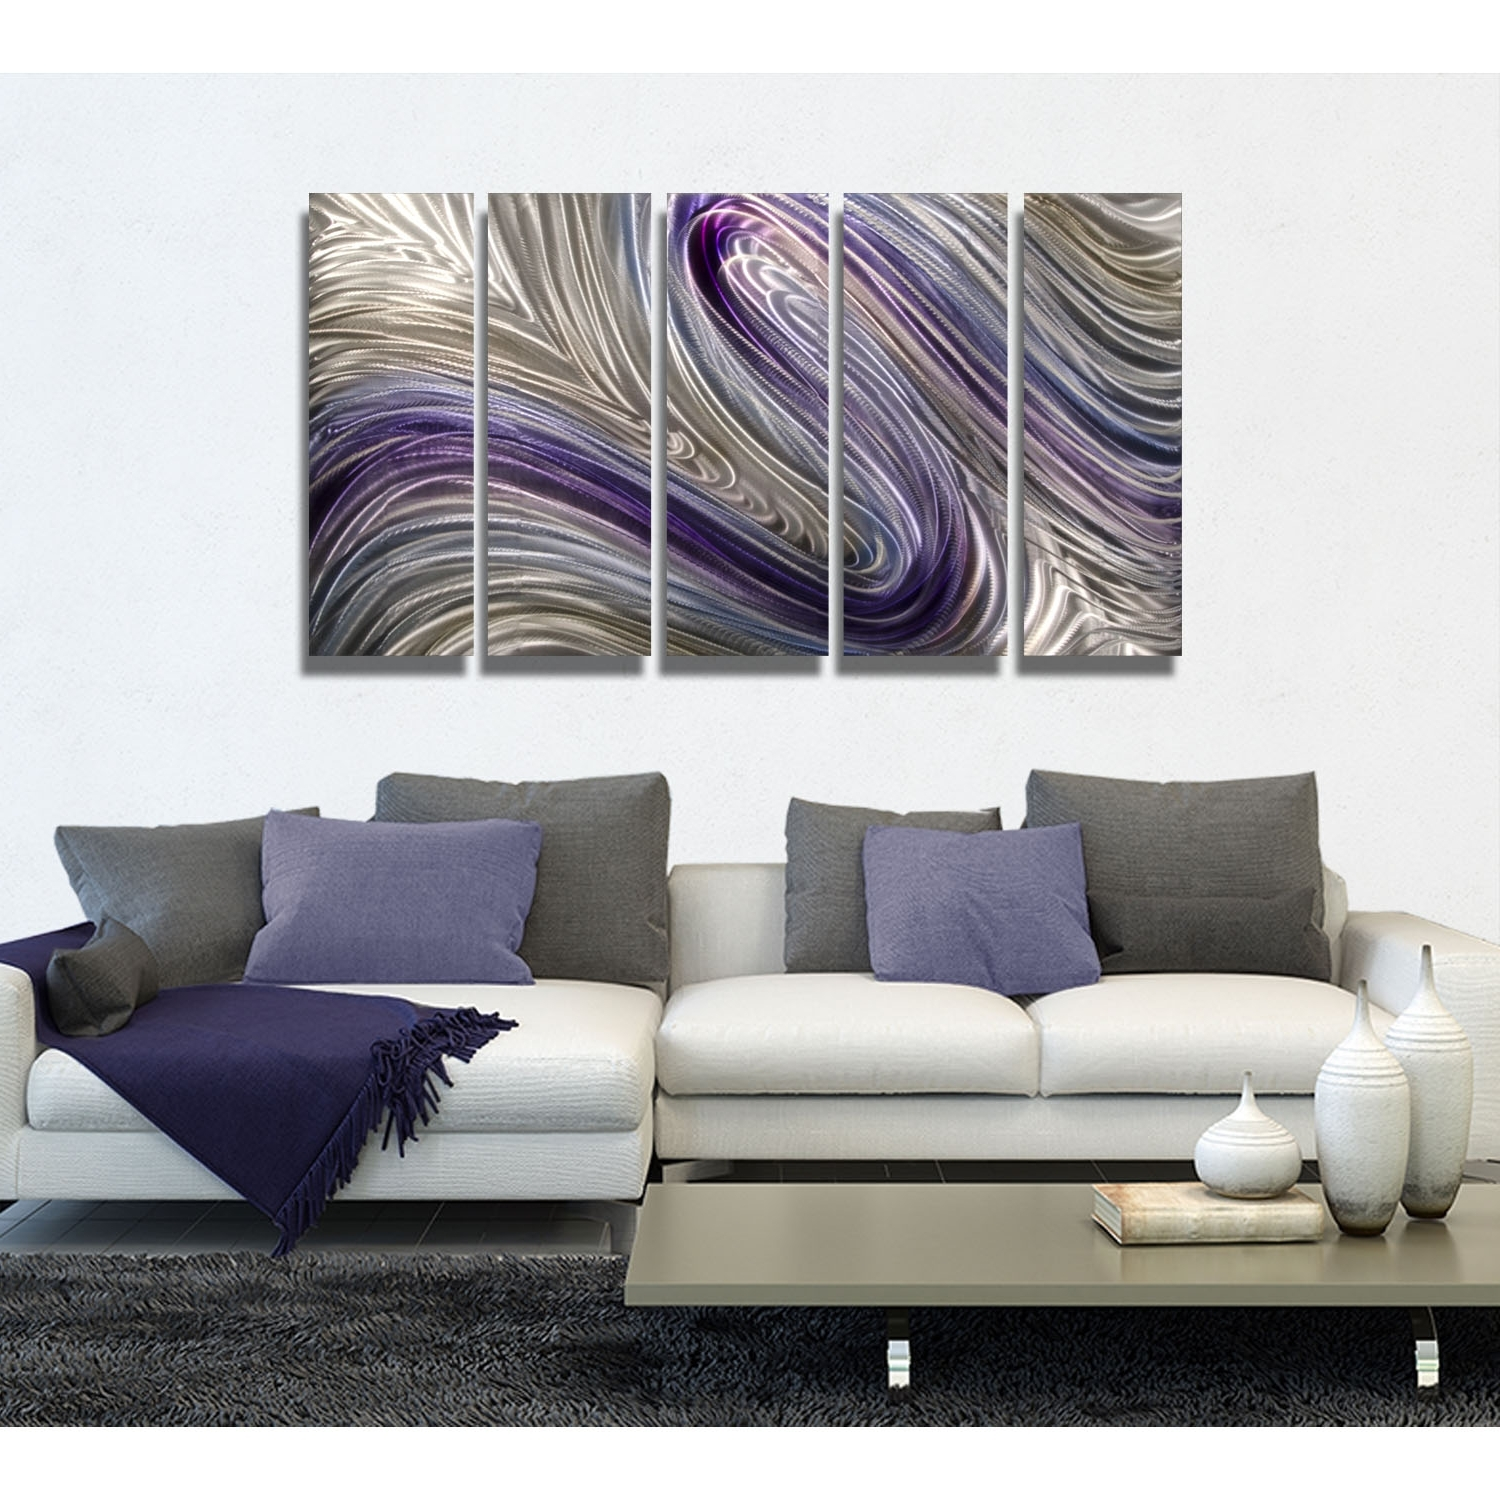 Purple And Grey Wall Art For Current Reverie – Purple, Silver And Gold Metal Wall Art – 5 Panel Wall (View 15 of 15)